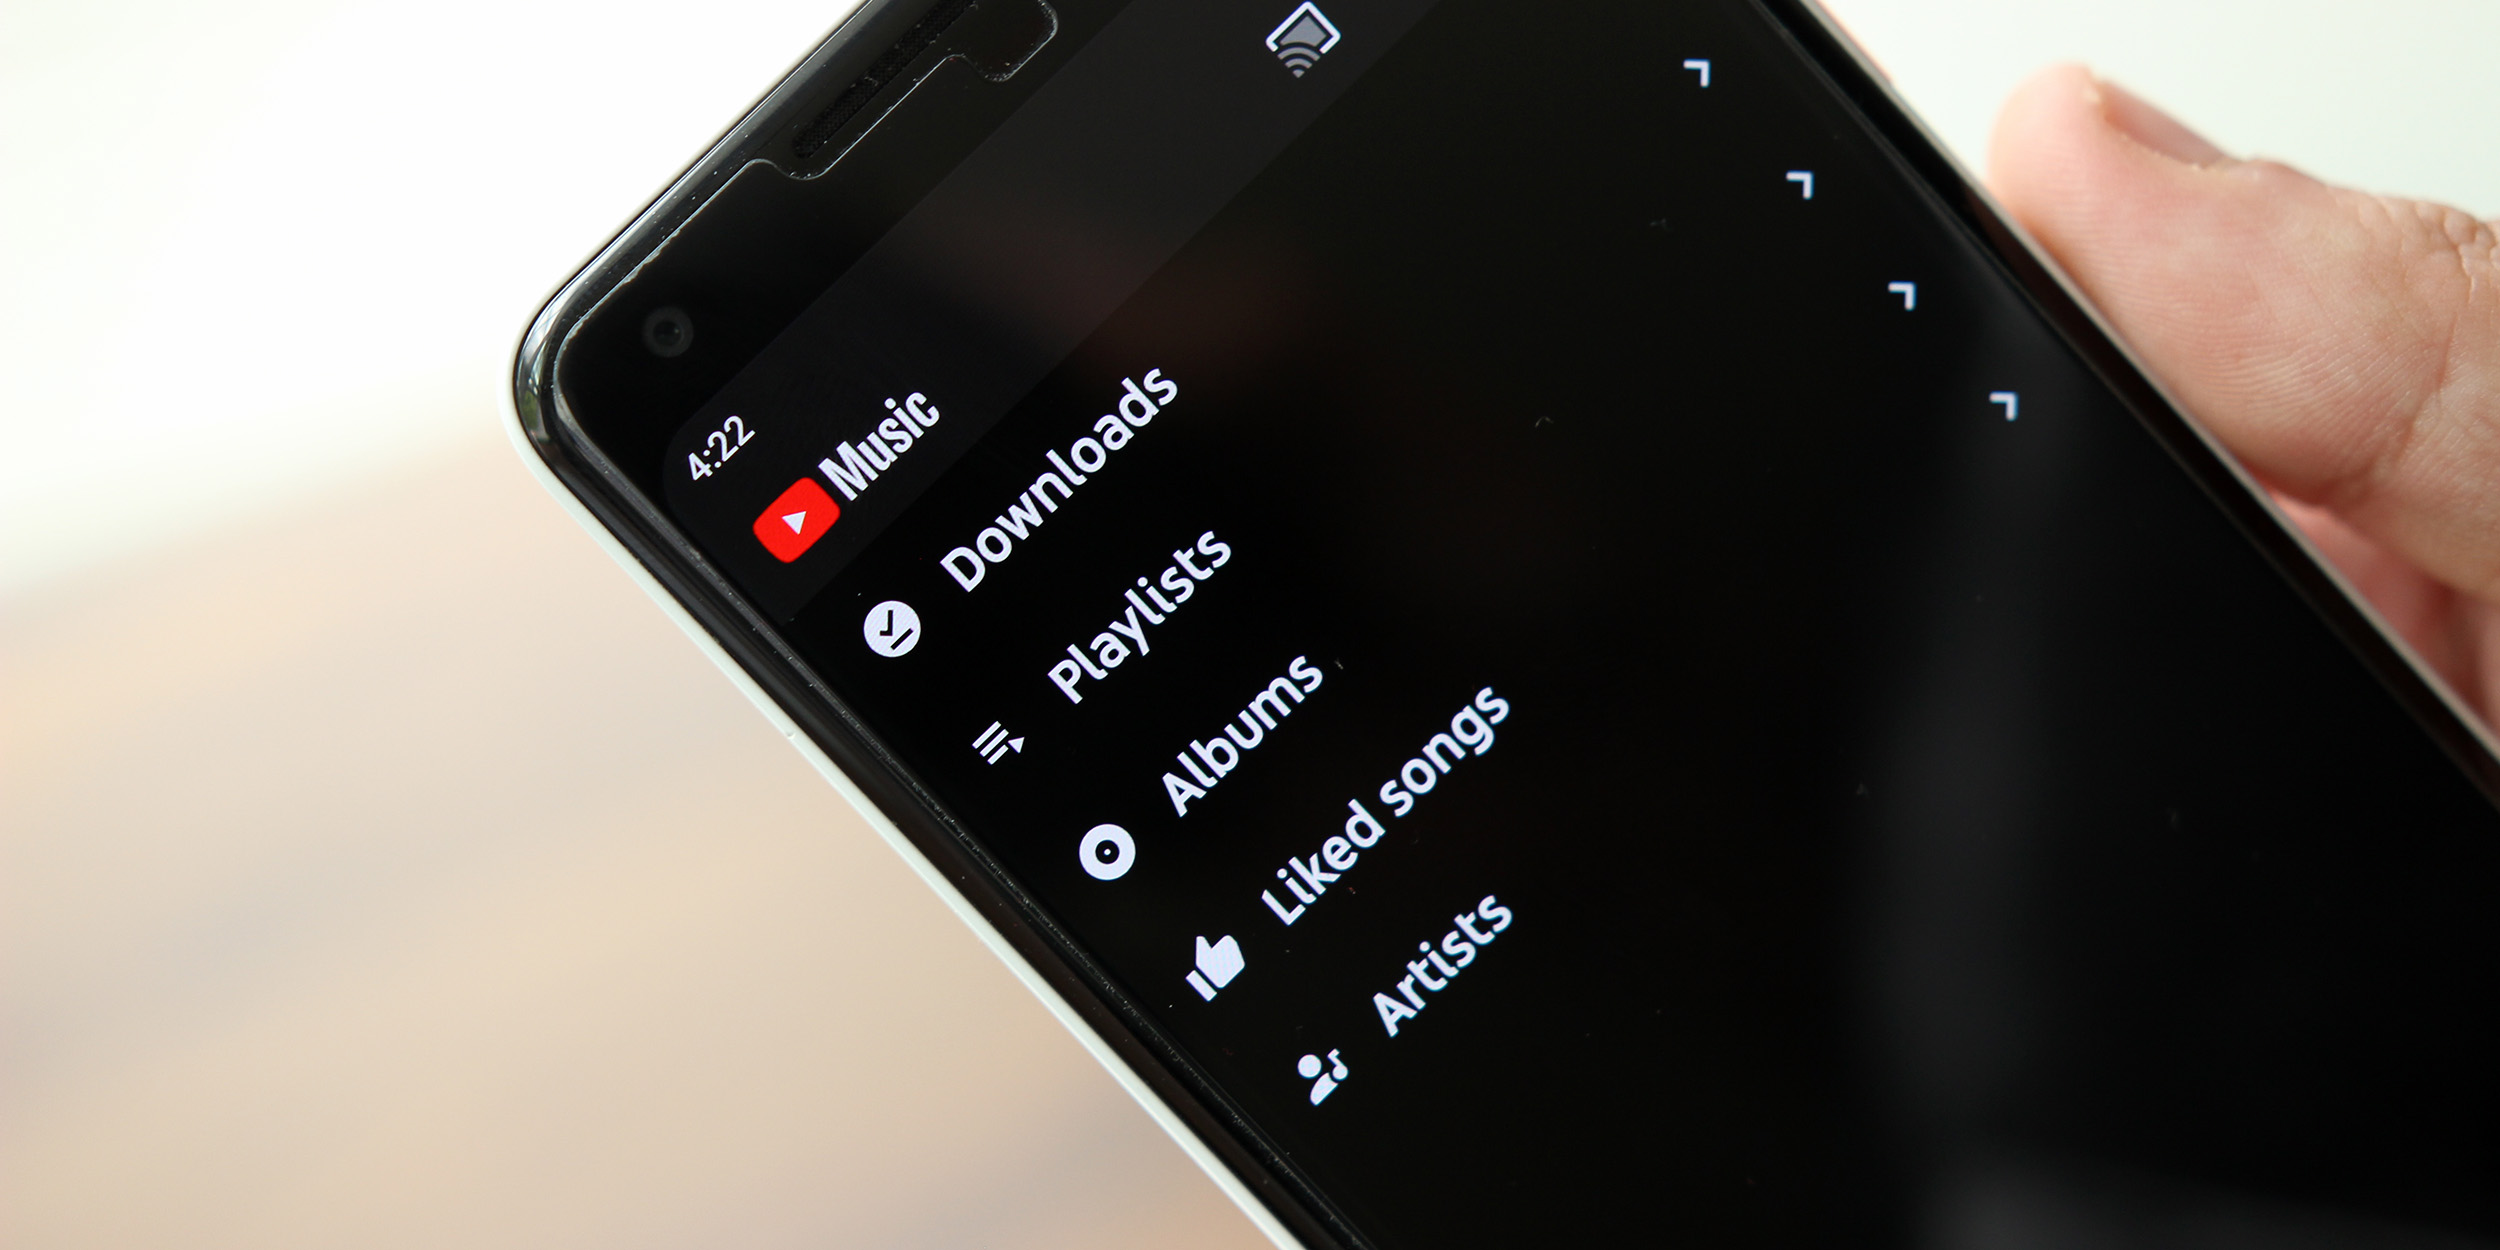 youtube music will get bi weekly updates w sd card support audio quality more planned